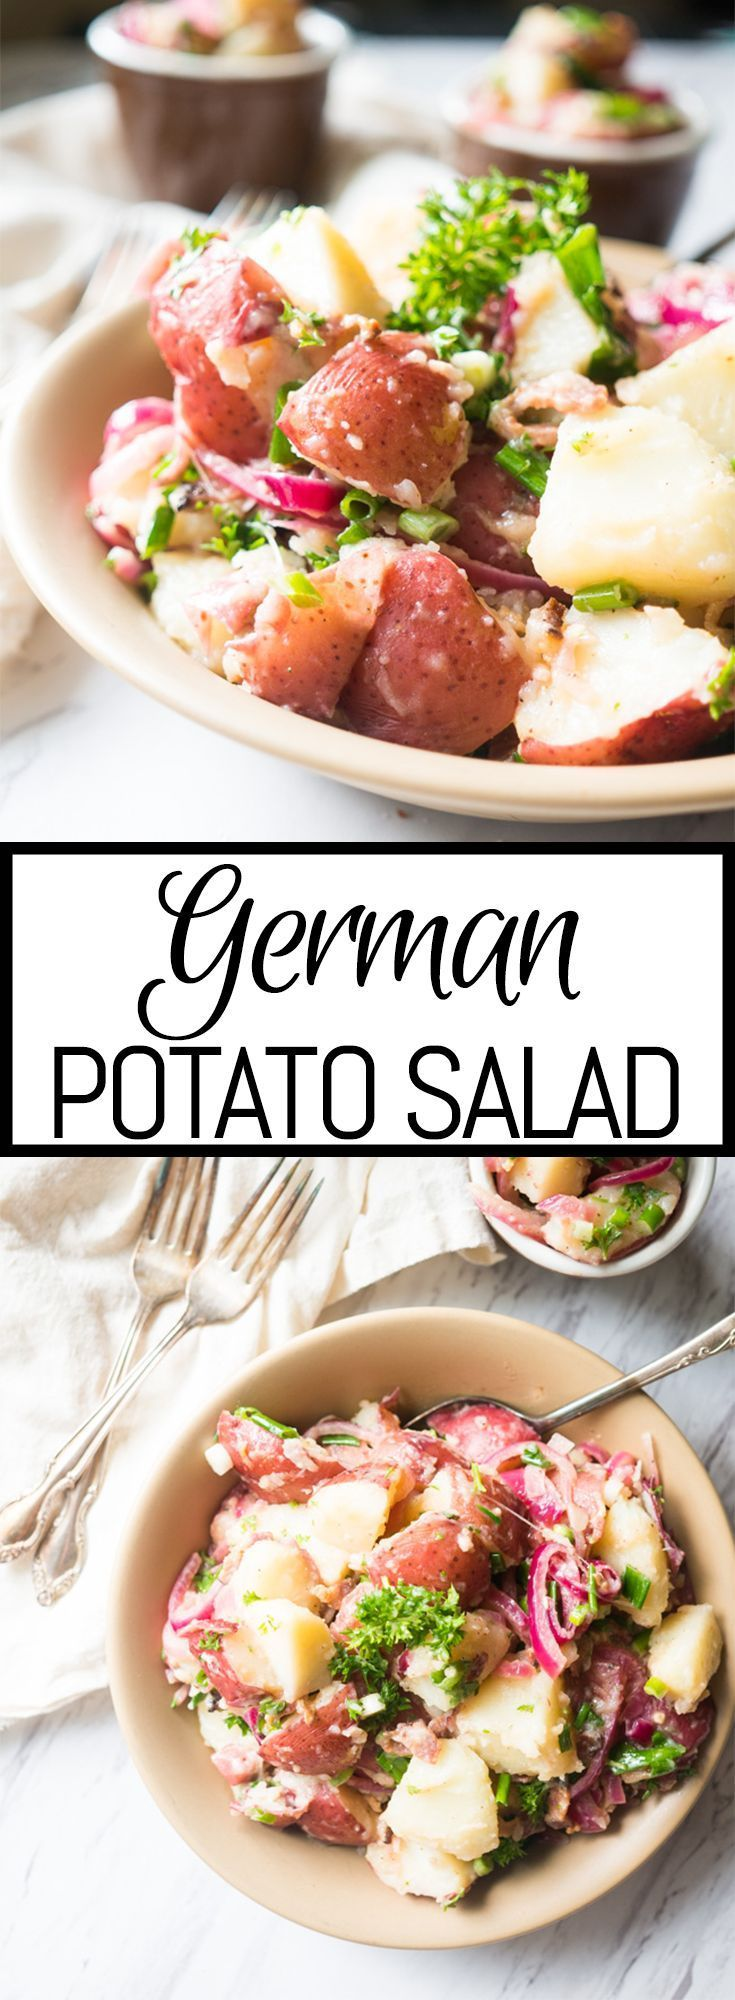 German Potato Salad with Bacon and Red Onion. Zippy, fresh, and without MAYO, this potato salad is the perfect side for a summer BBQ.